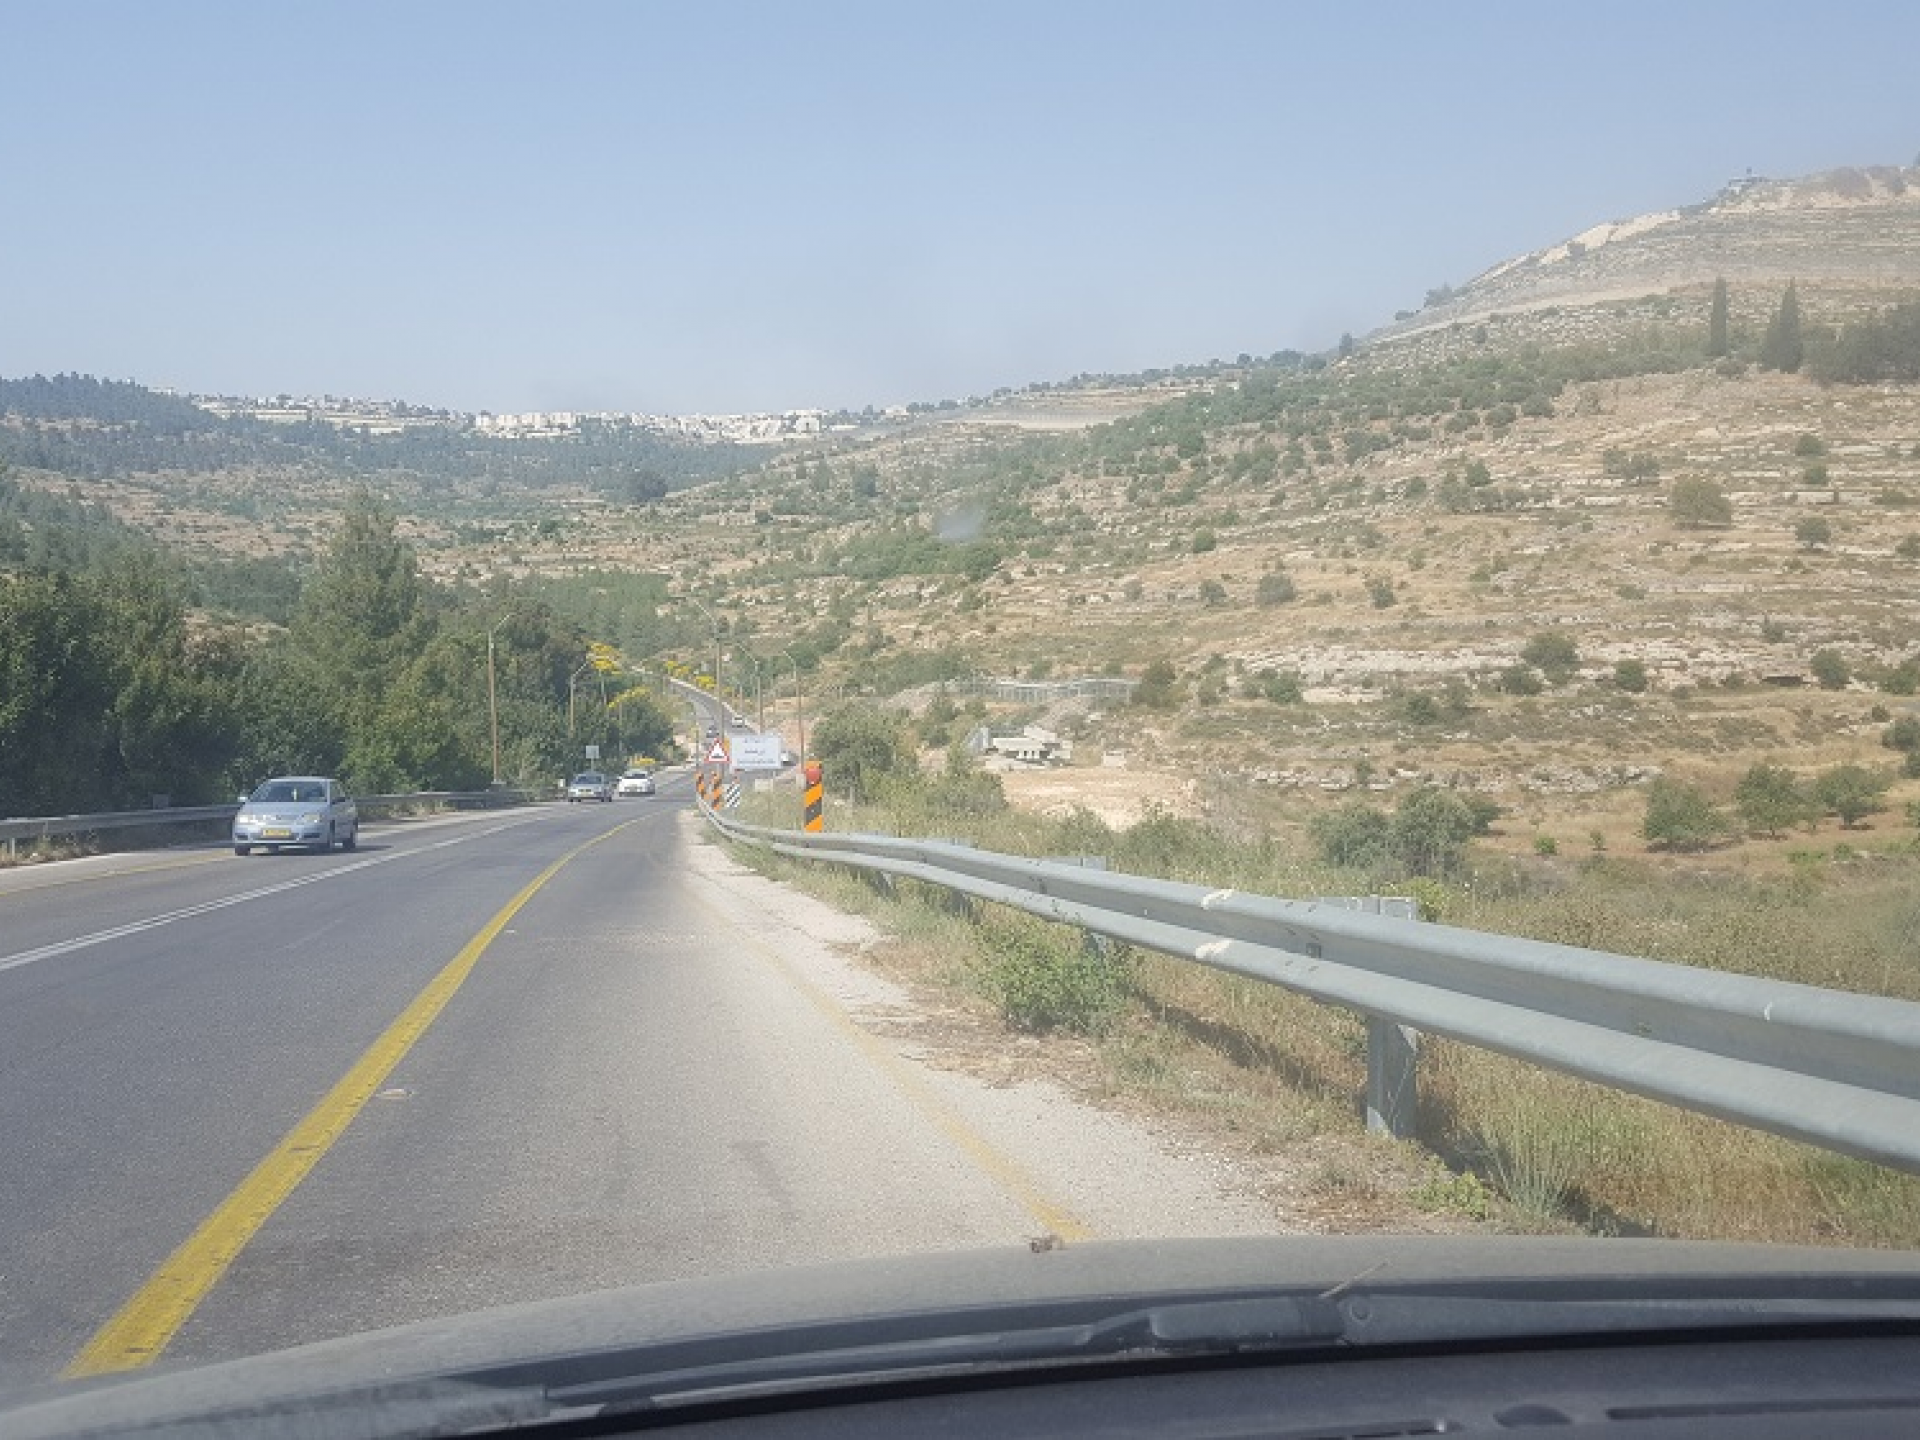 The new location of the Ein Yael checkpoint